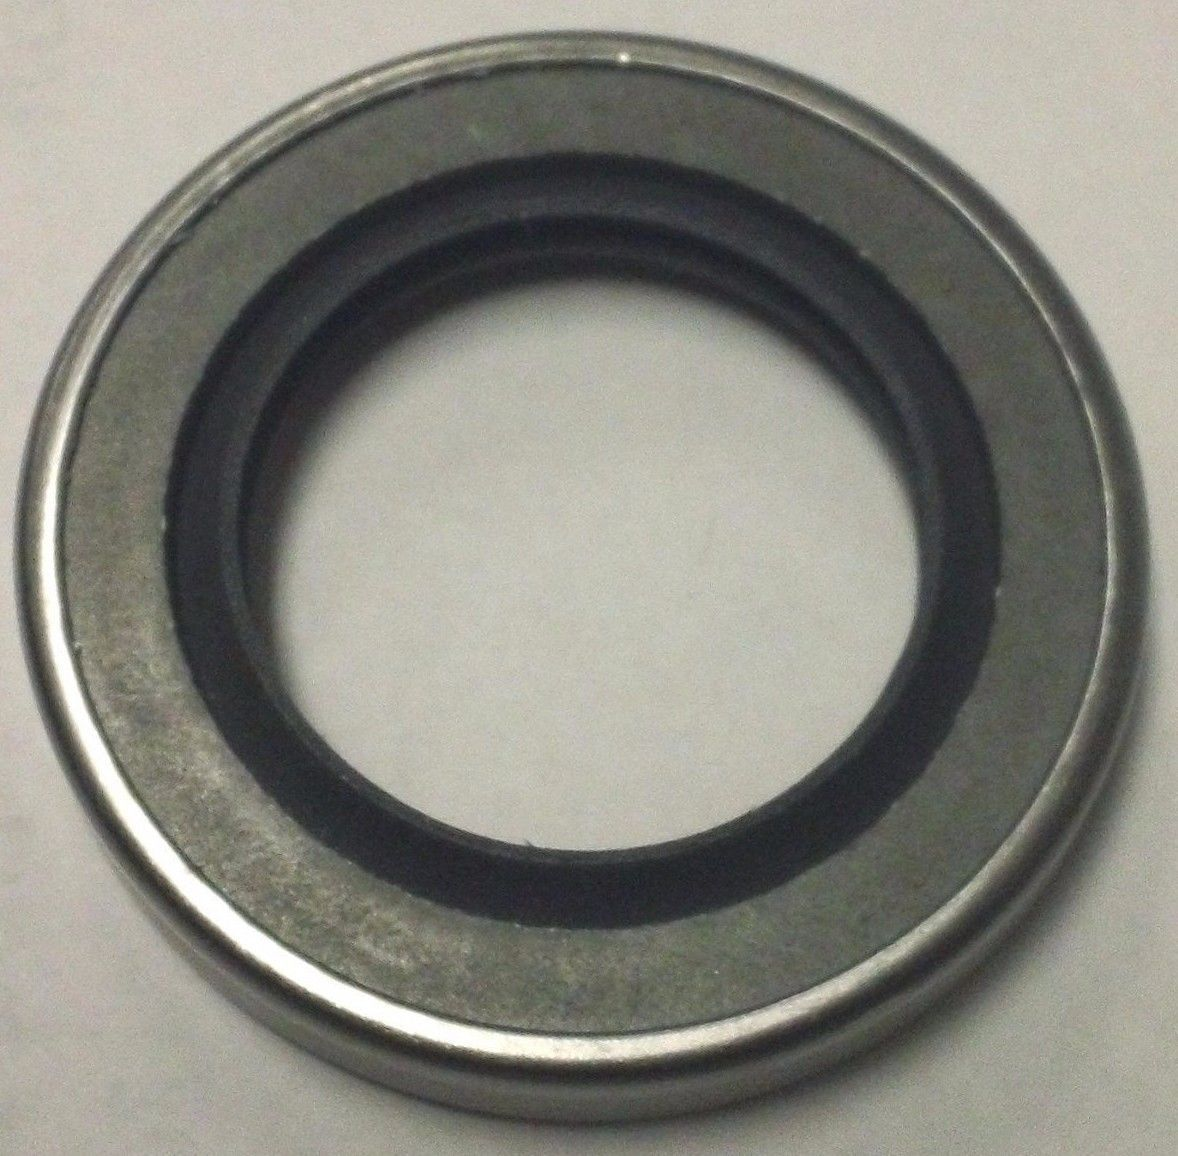 Primary image for X73-50-30, Commercial, Parker, Permco, Shaft Seal